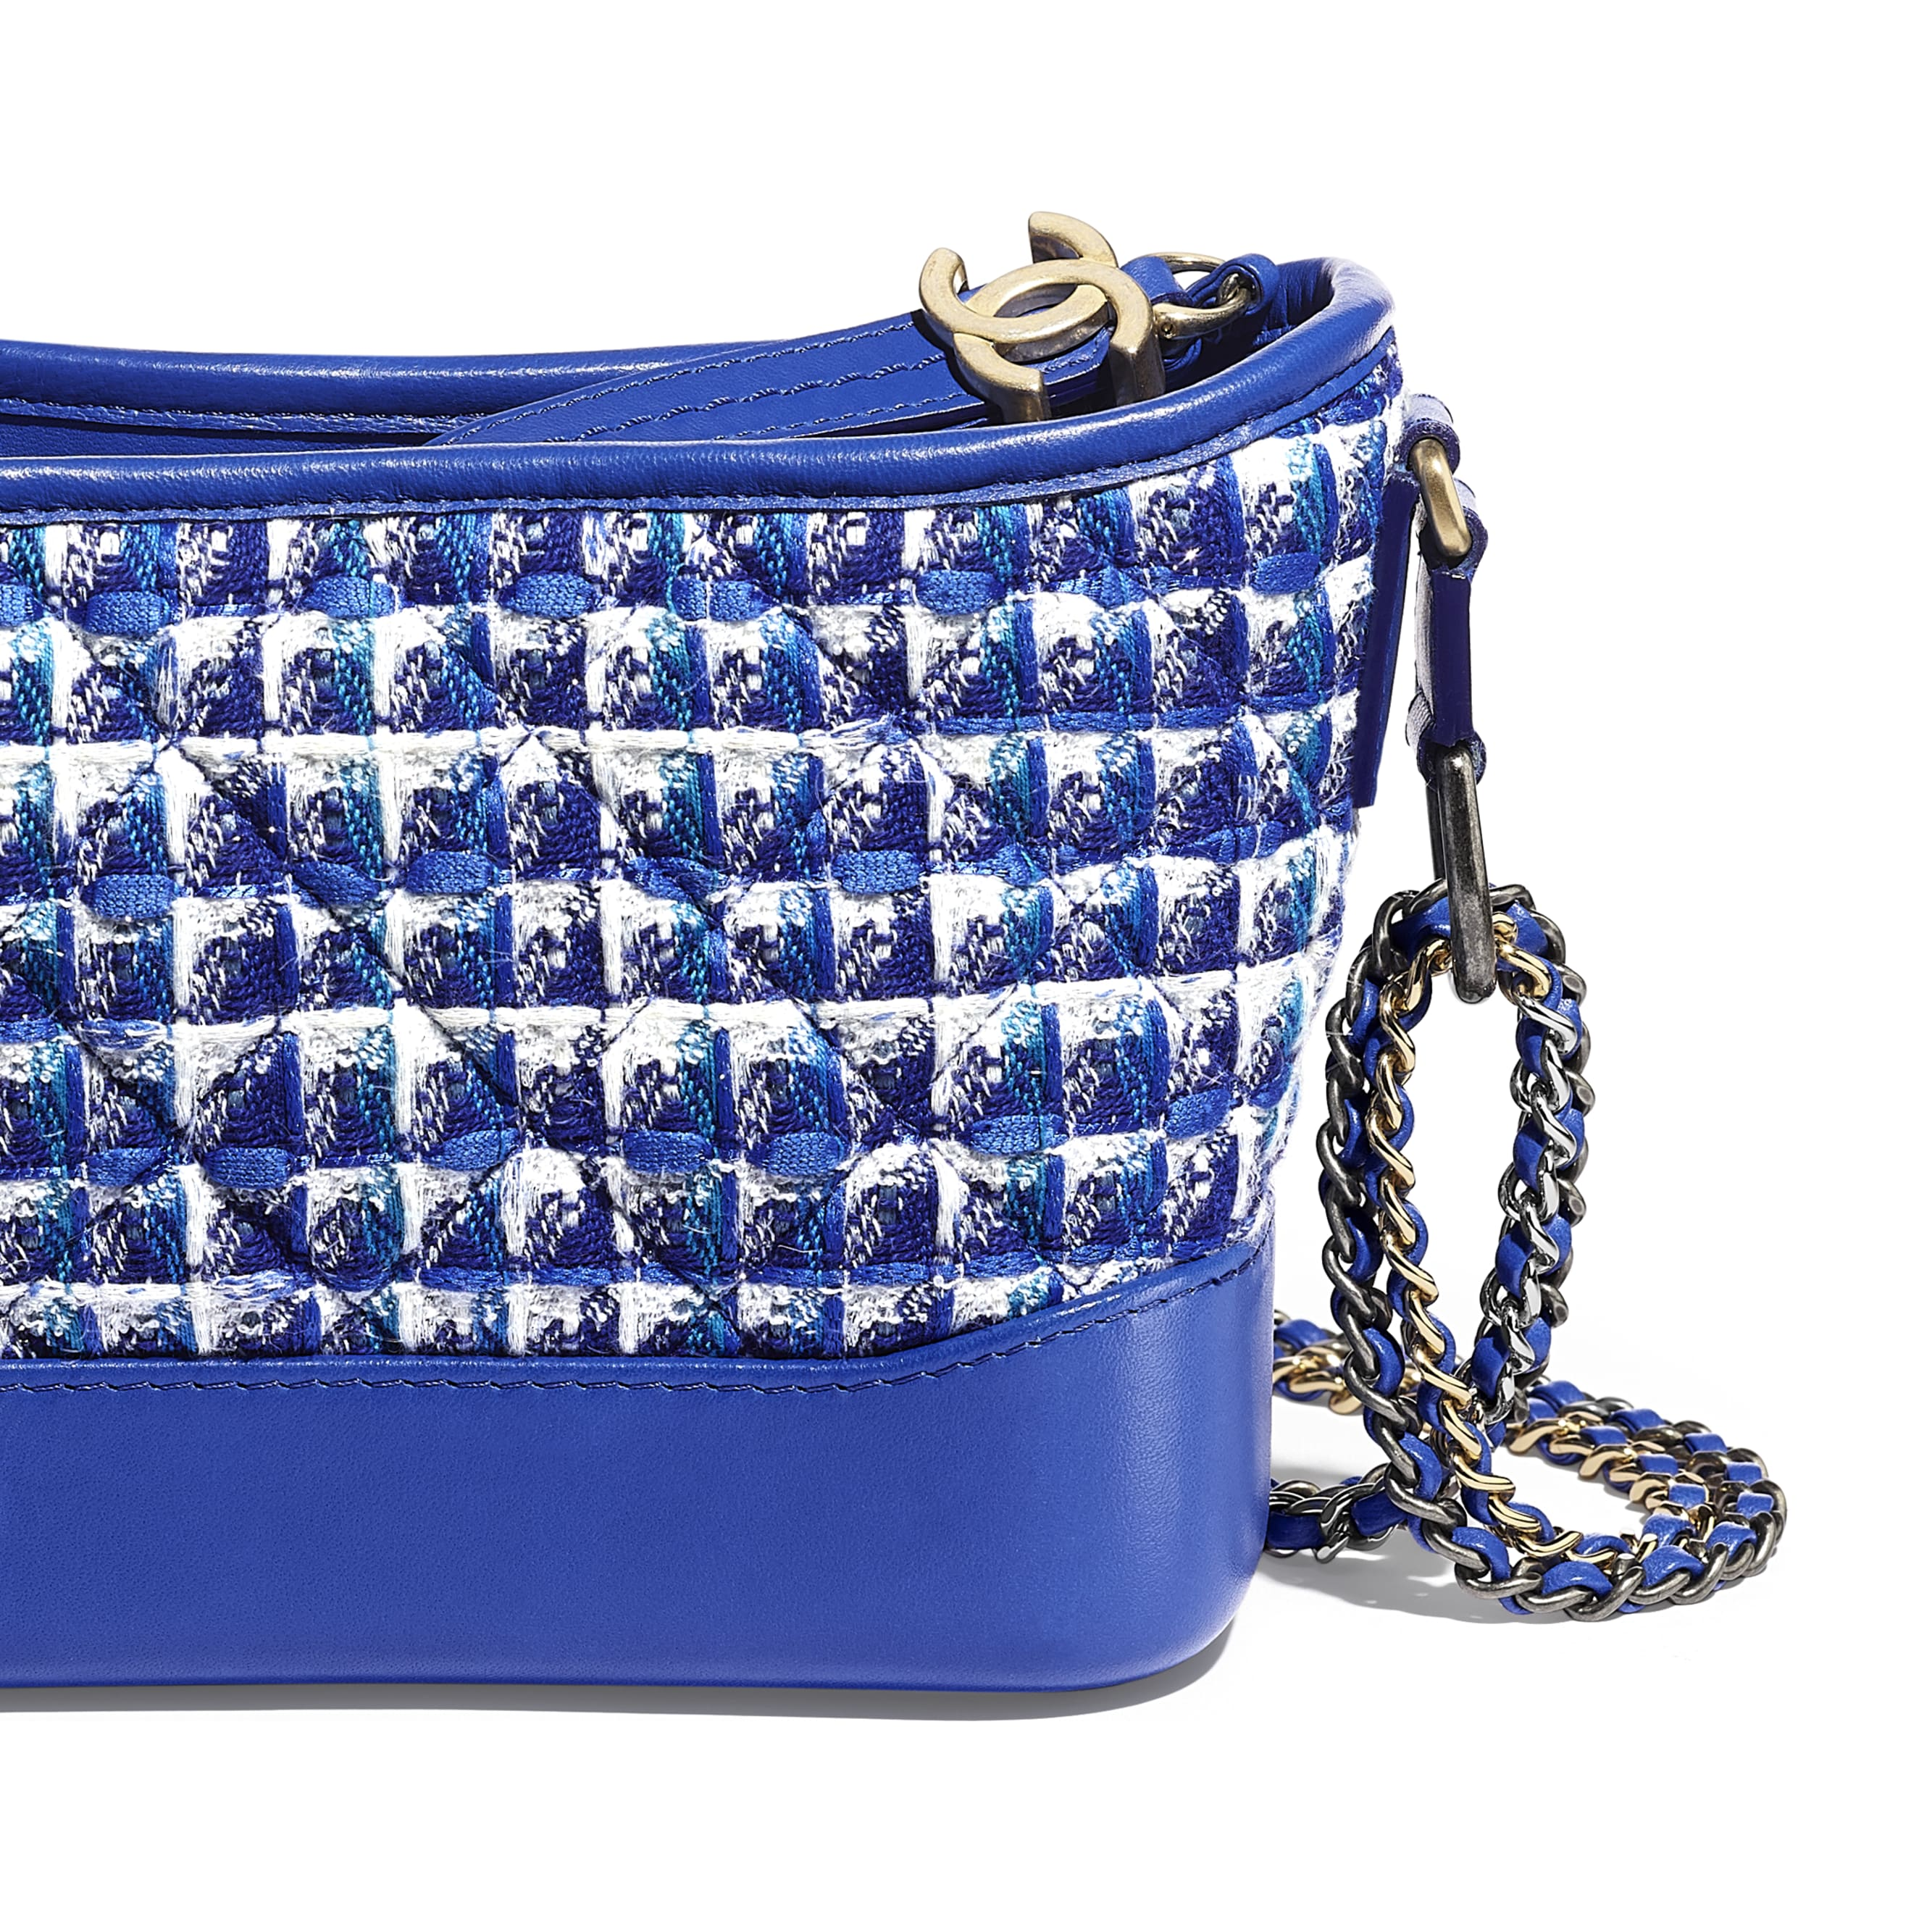 CHANEL'S GABRIELLE Small Hobo Bag - Blue, White & Silver - Tweed, Calfskin, Silver-Tone & Gold-Tone Metal - CHANEL - Extra view - see standard sized version